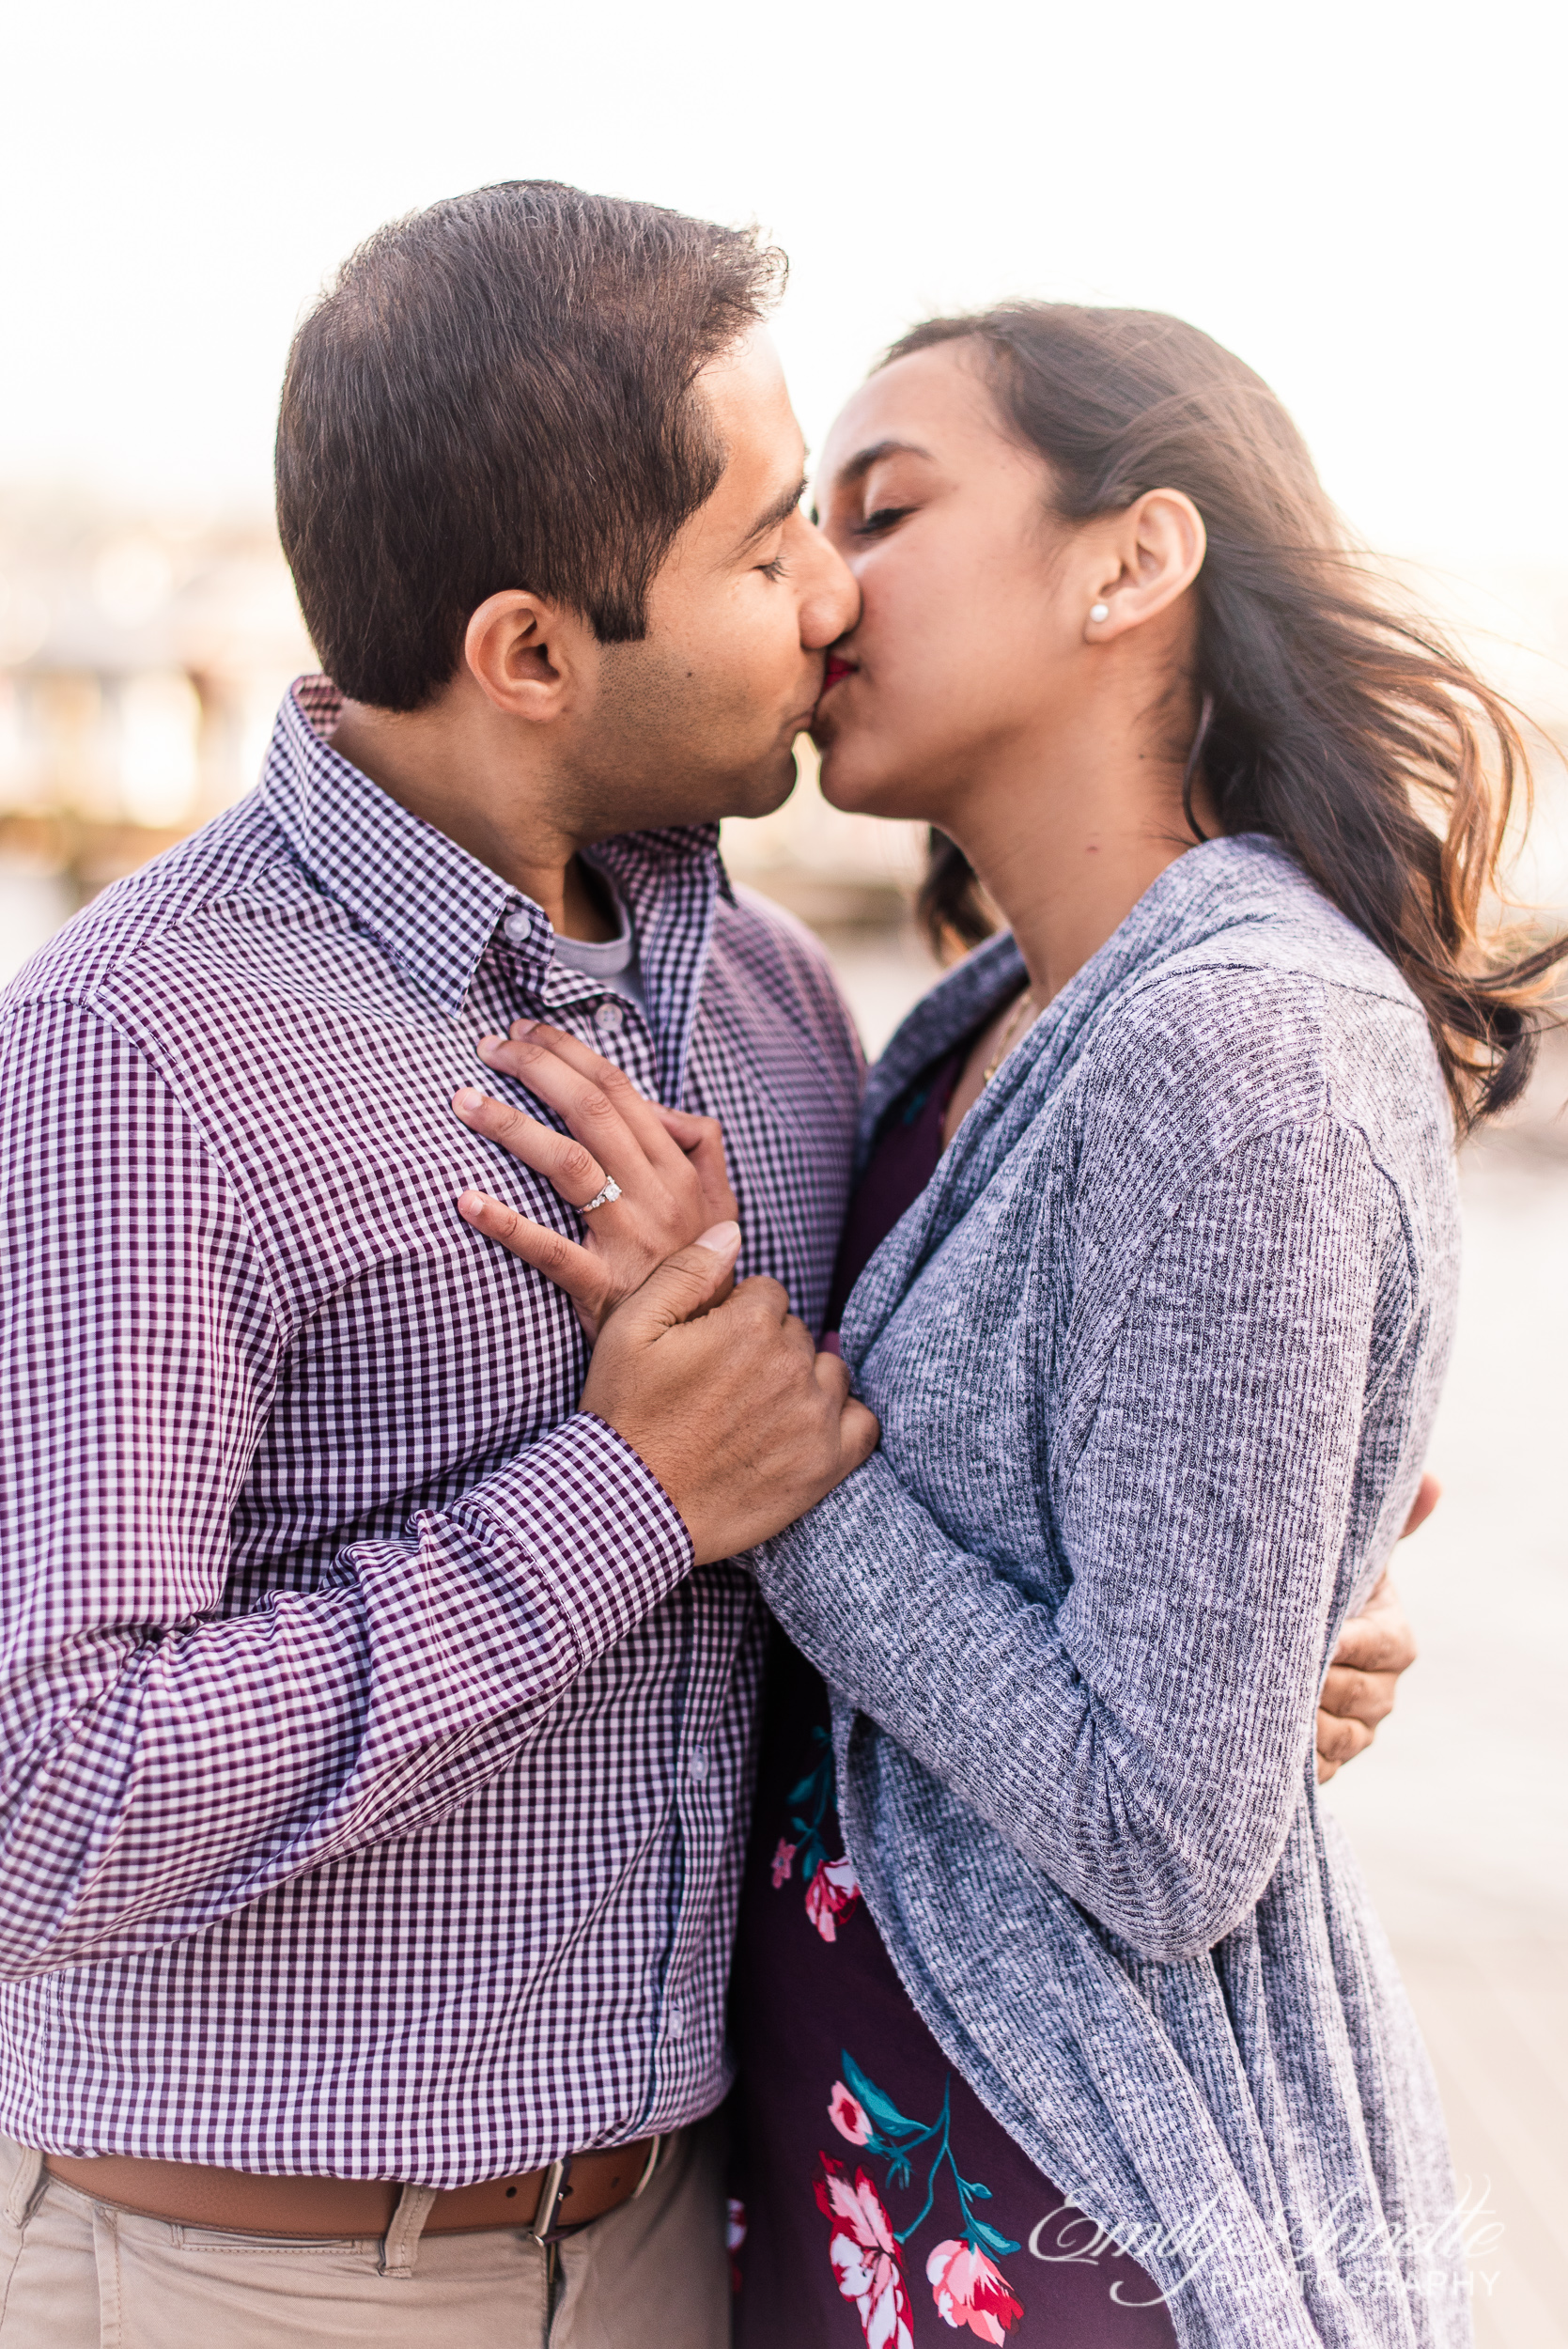 An engaged couple kisses by the Potomac River docks in Old Town Alexandria Virginia for an engagement session